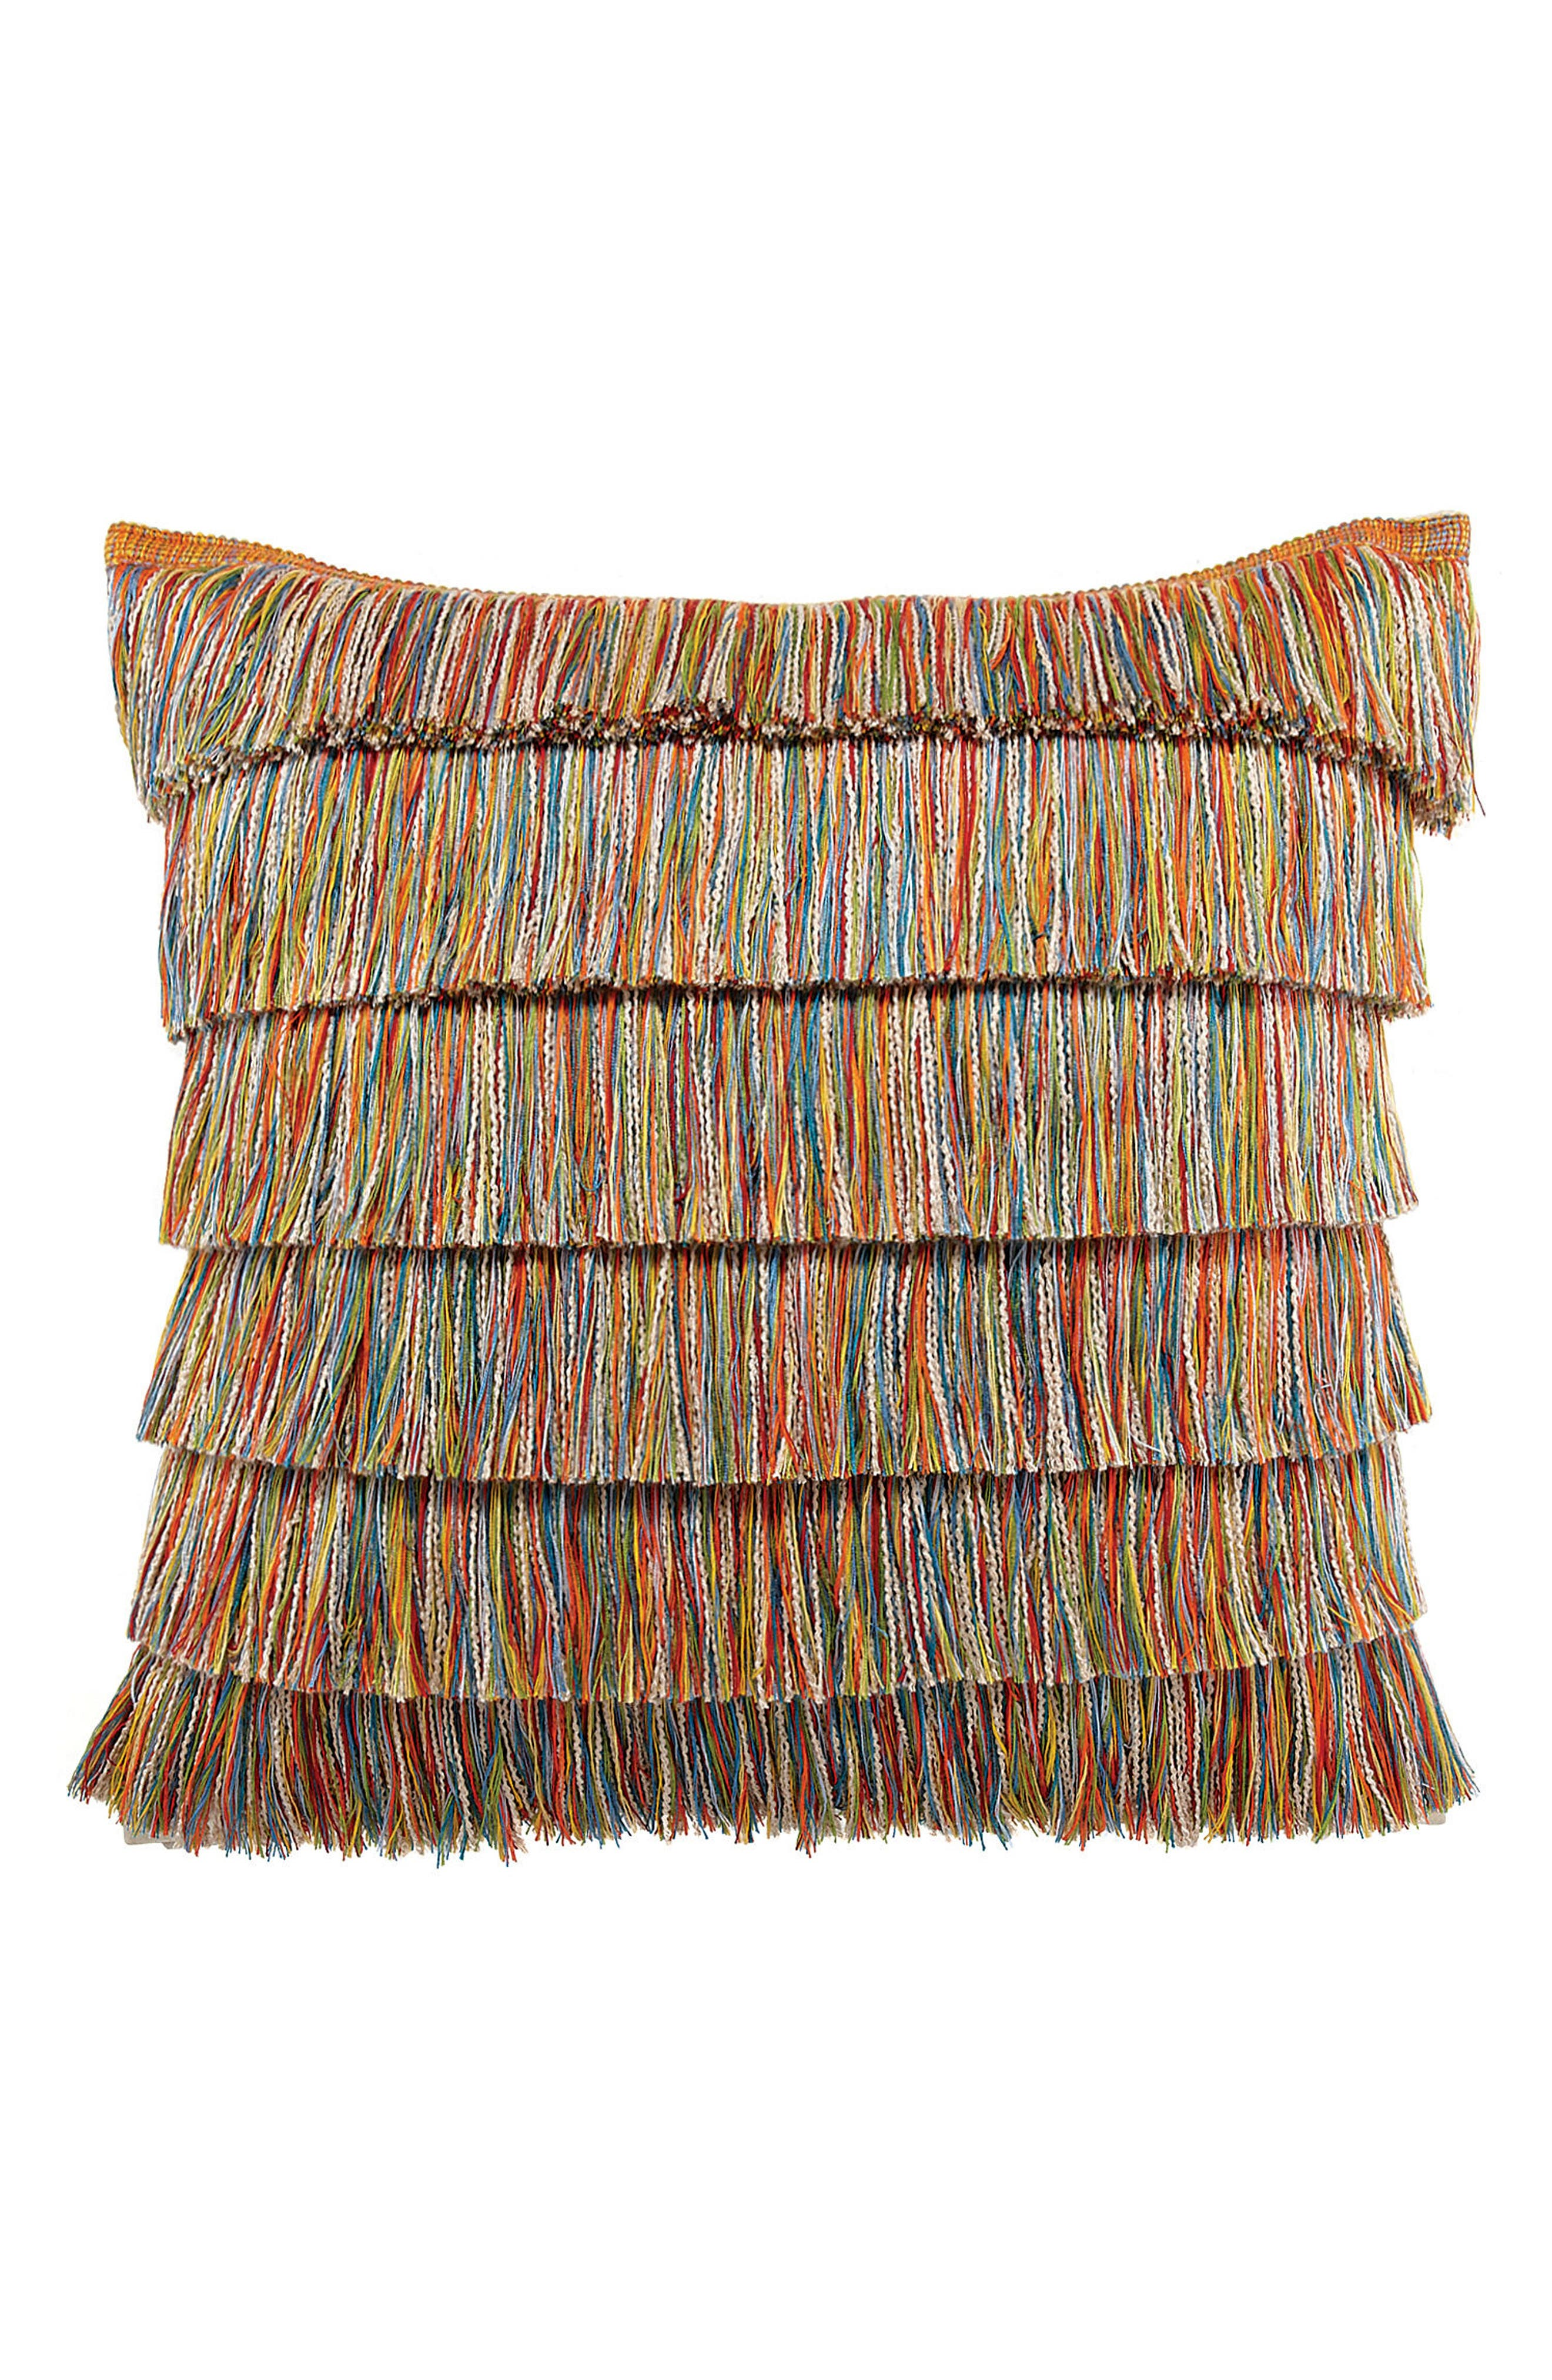 Elaine Smith Hula Indoor/Outdoor Accent Pillow